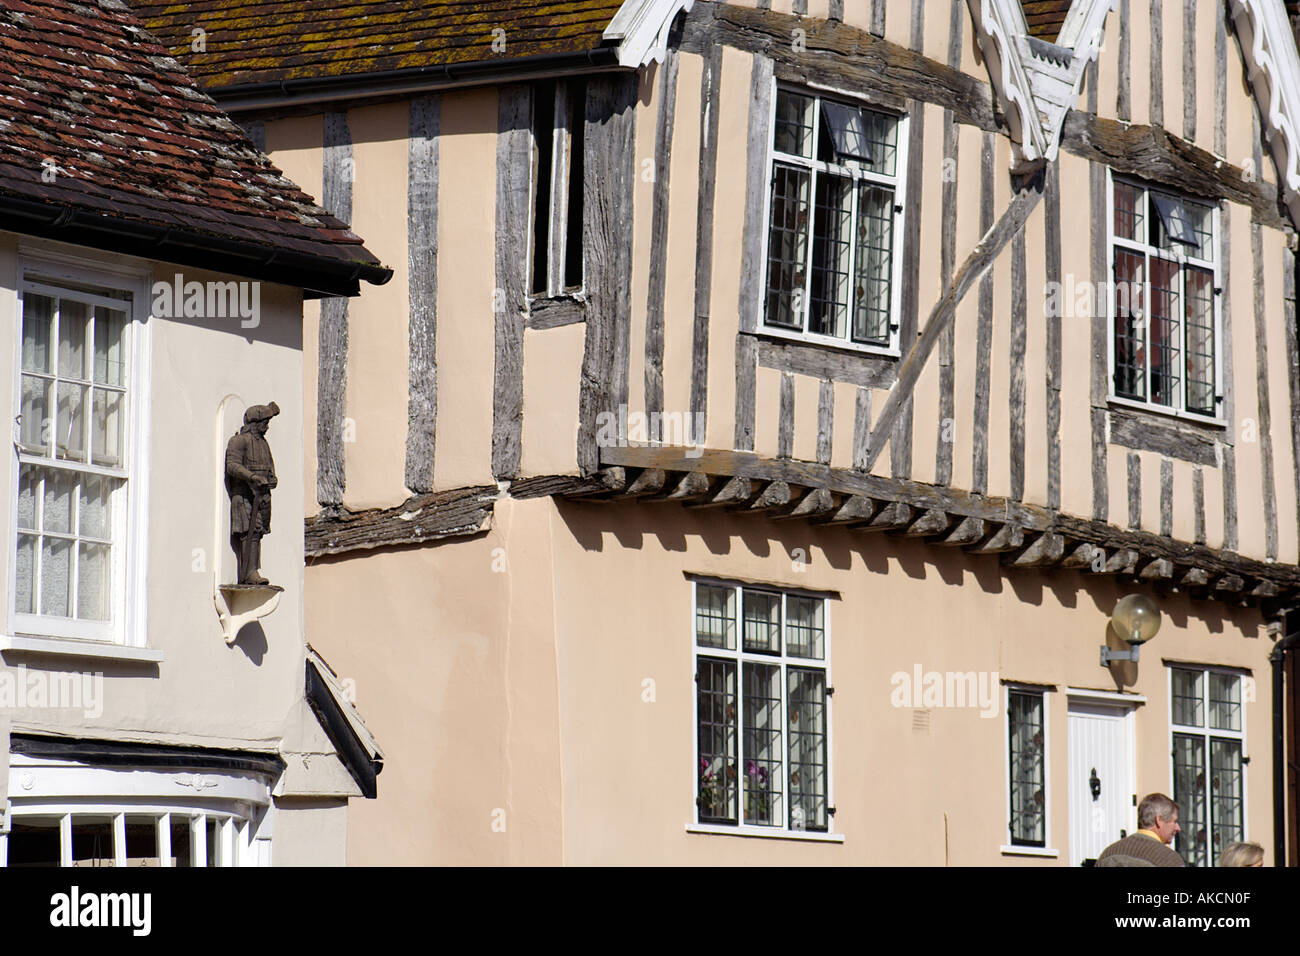 The picturesque and idyllic High Street Lavenham Suffolk East Anglia UK - Stock Image